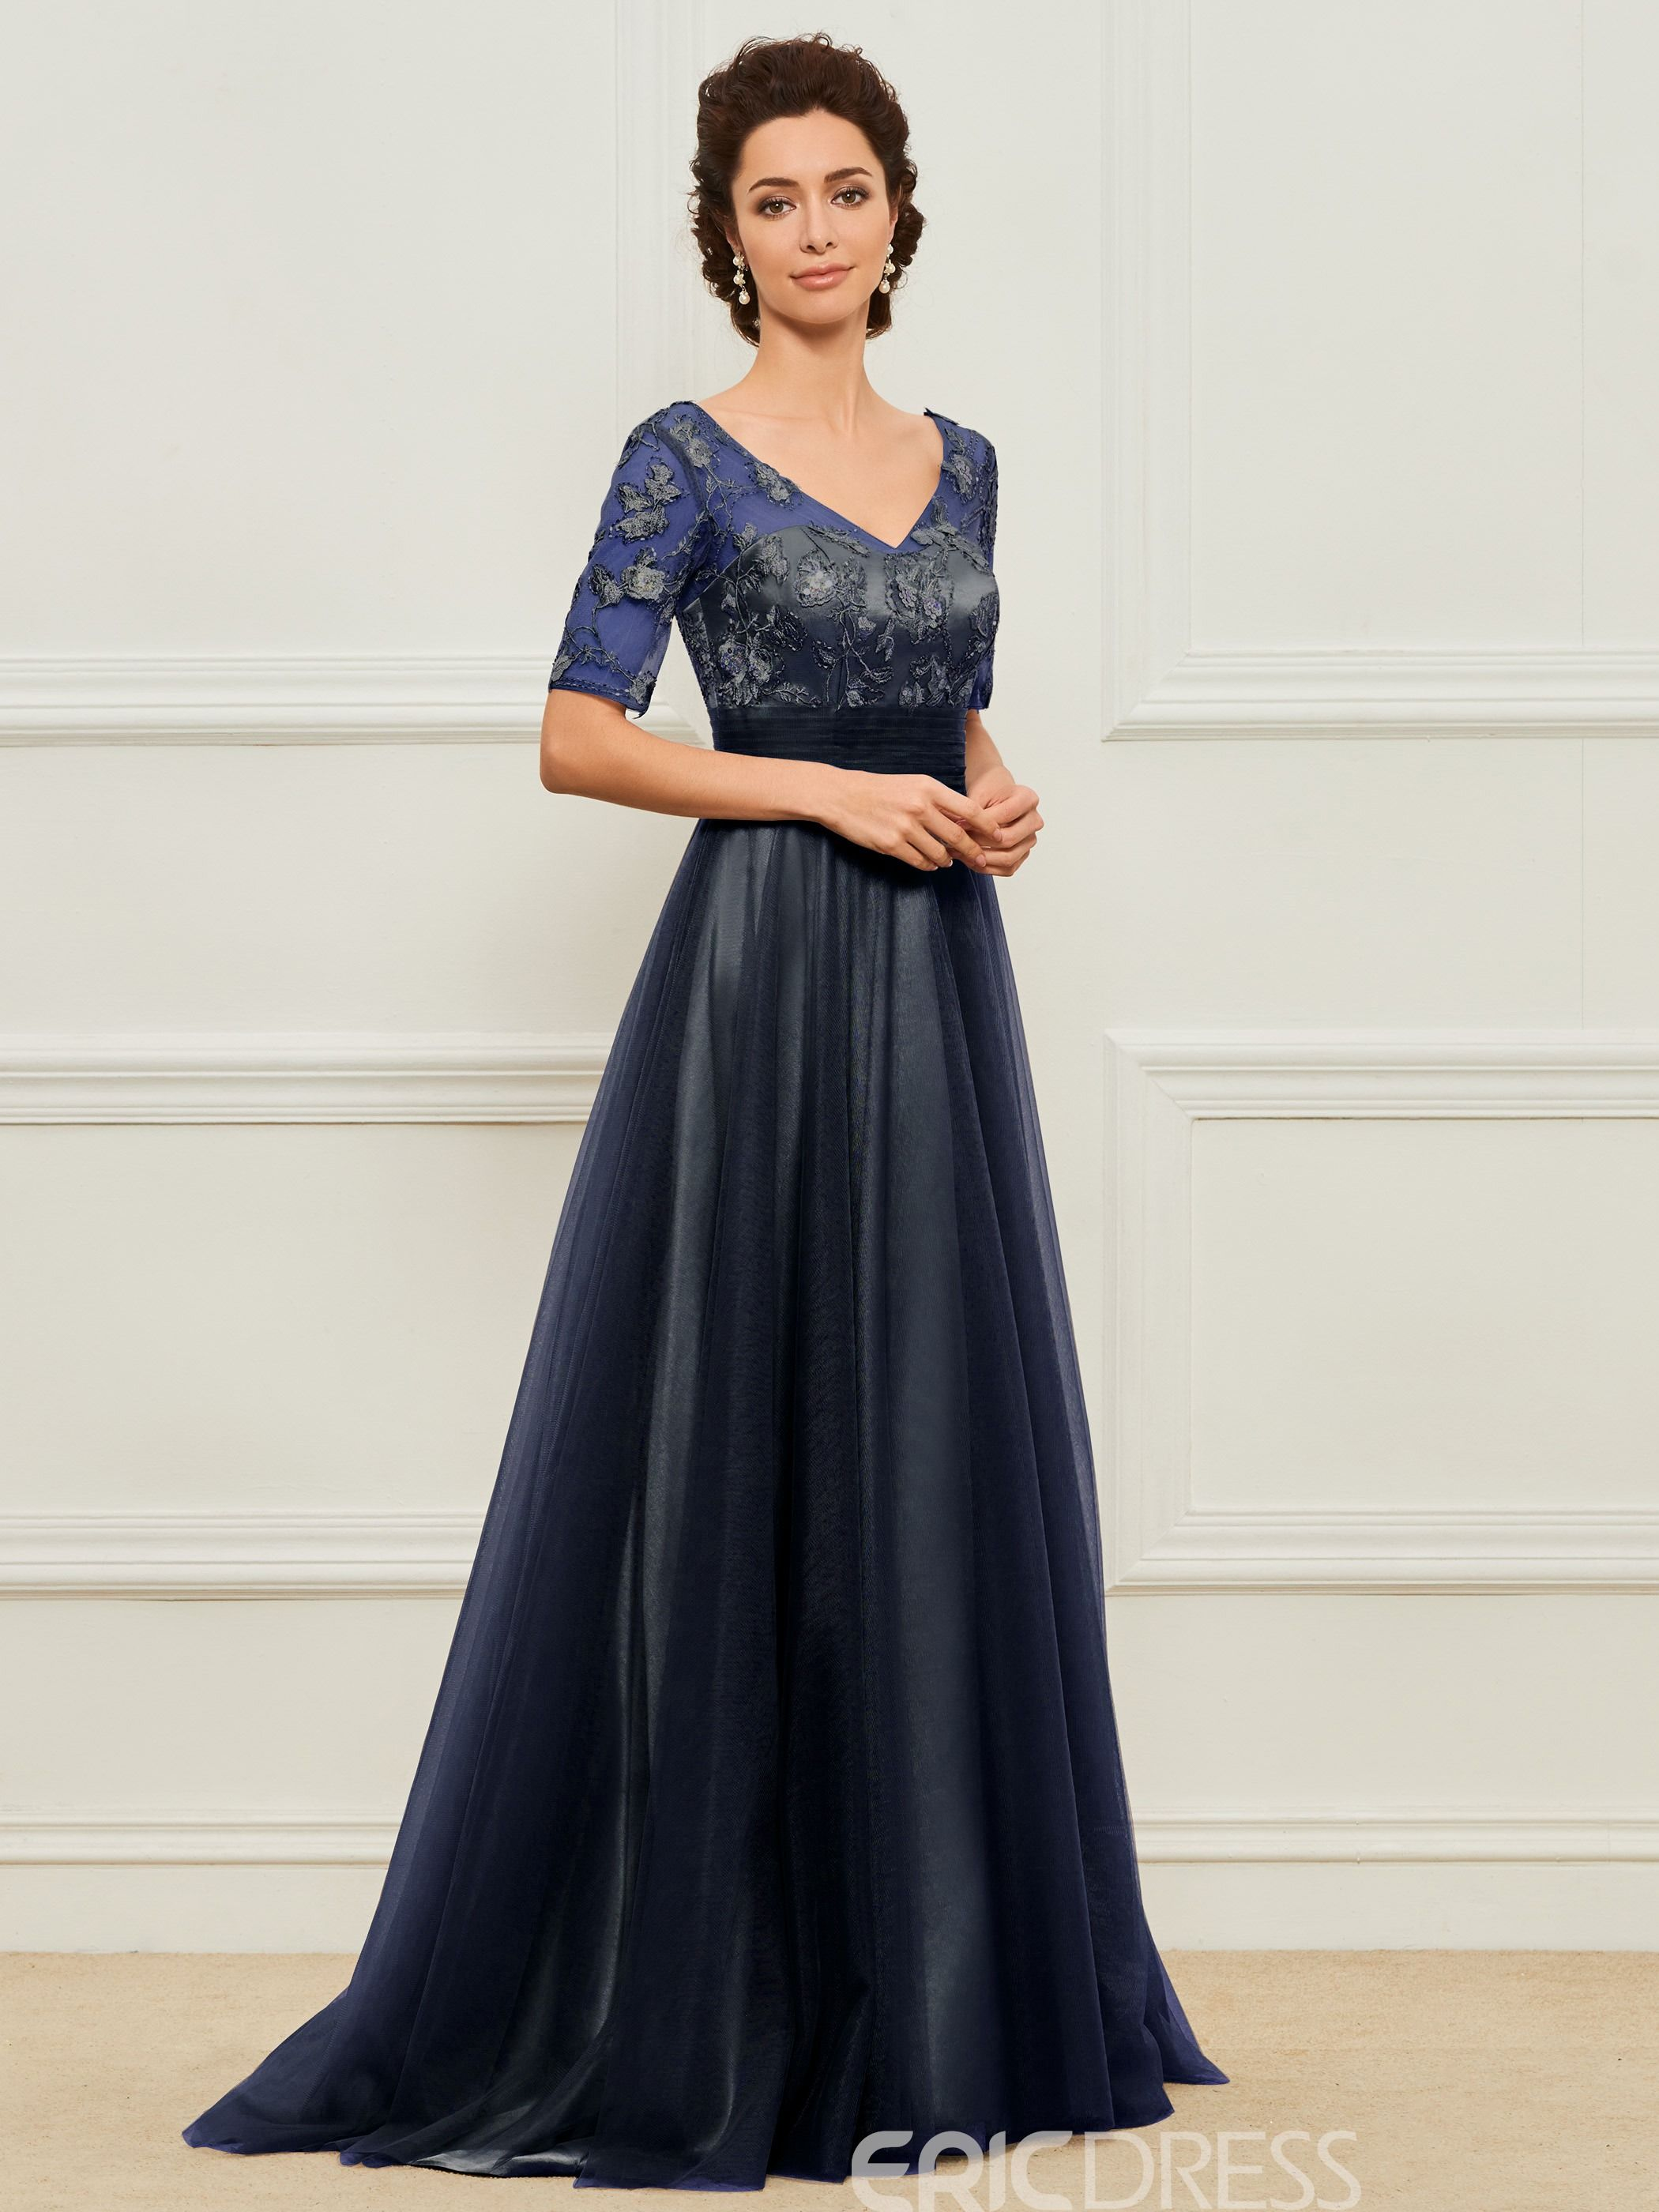 e9fb857b08c6 Ericdress A Line Short Sleeves Tulle Mother of the Bride Dress 13136153 -  Ericdress.com